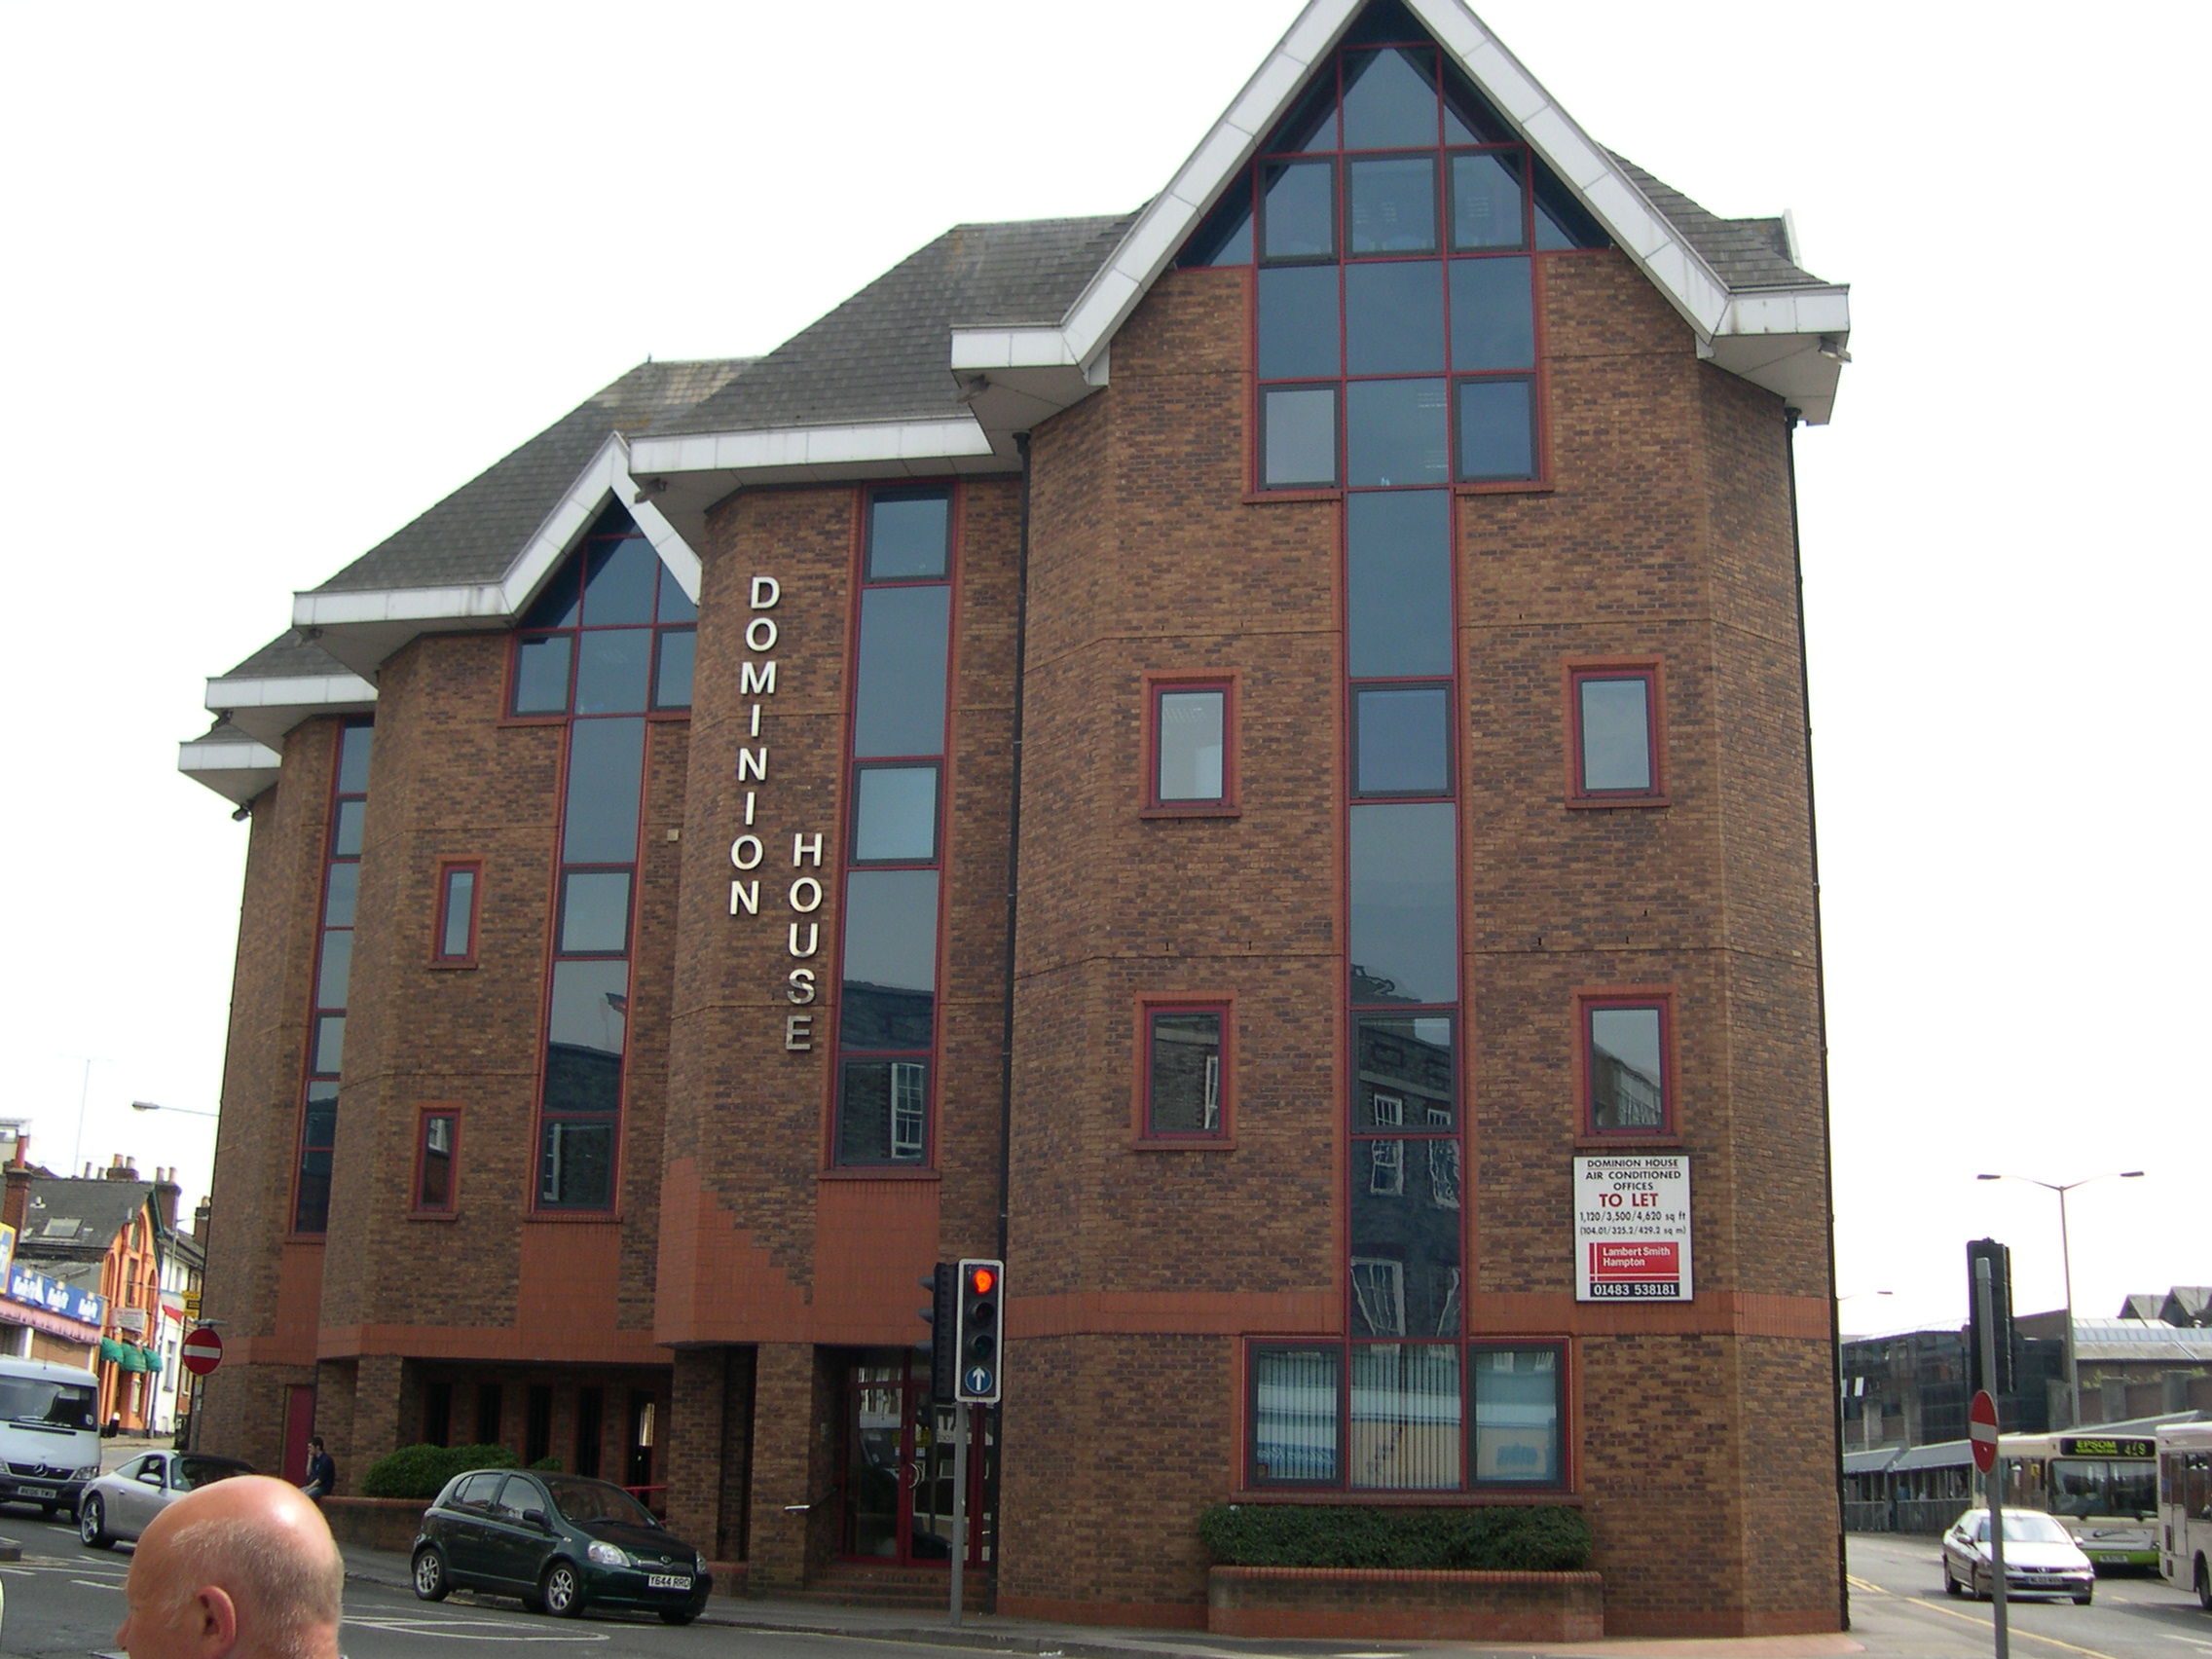 DOMINION HOUSE (Part 3rd floor), Woodbridge Road, GUILDFORD - LETTING